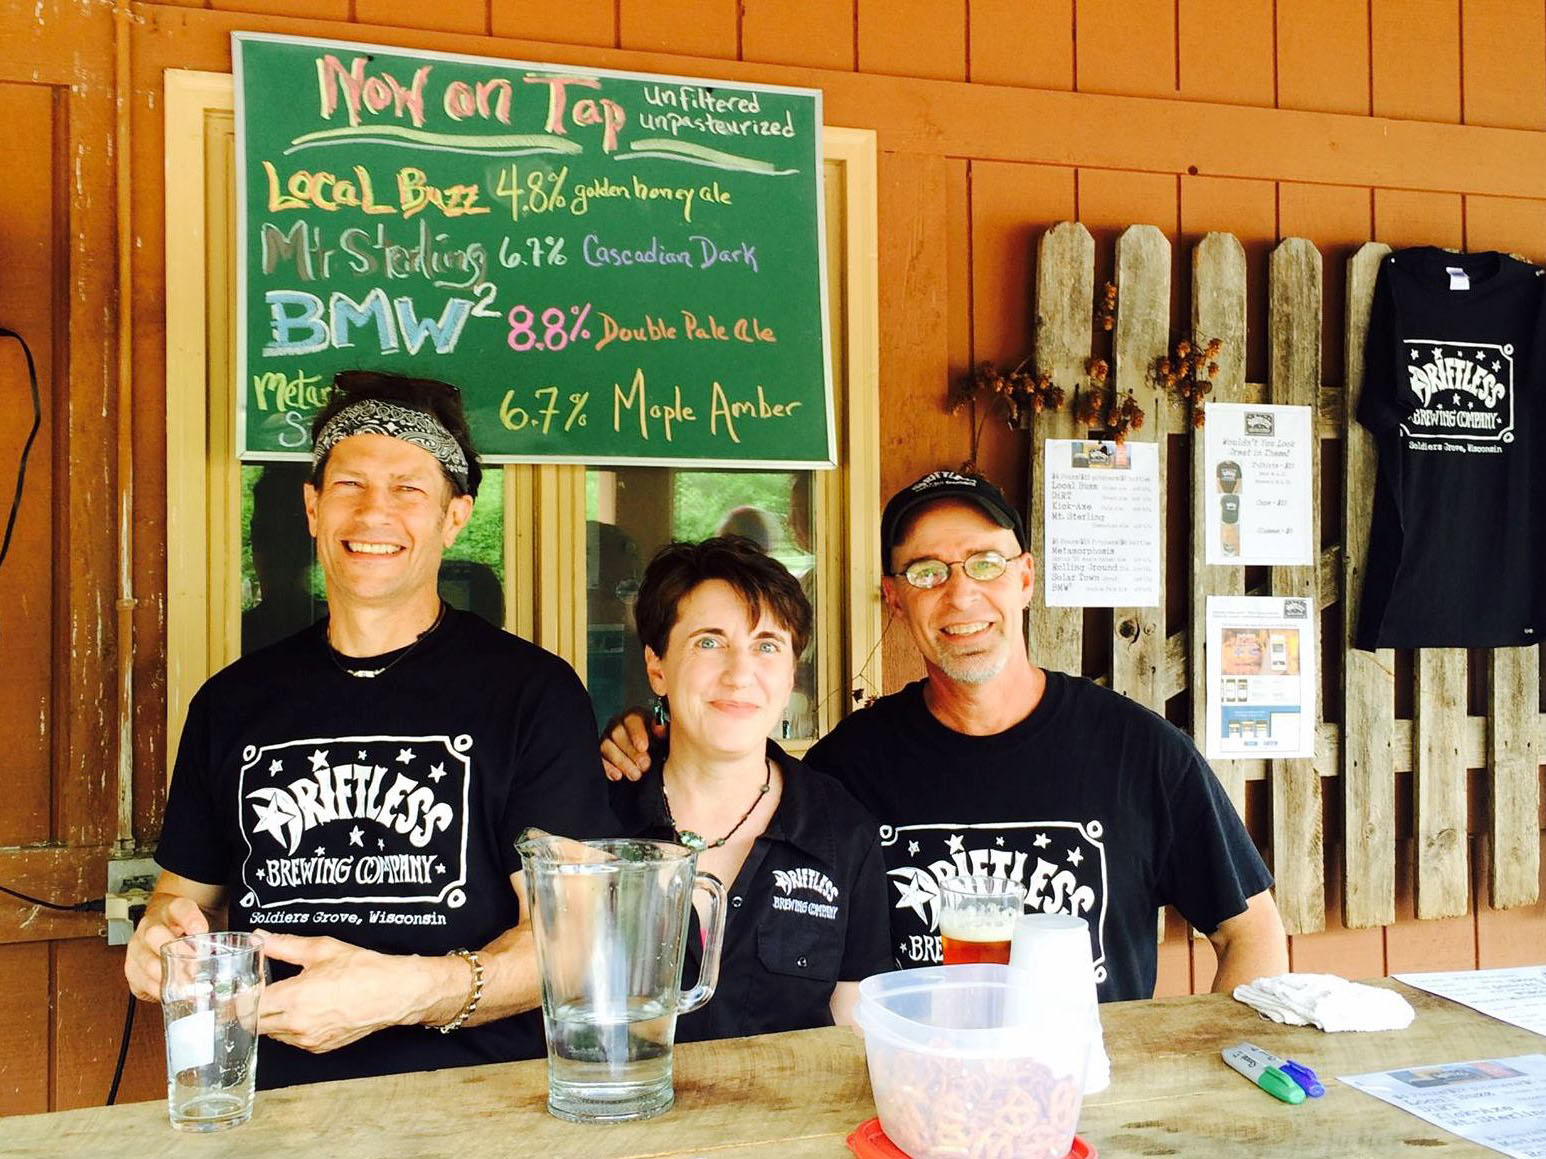 Chris, Cynthia & Michael serving beer at the Craft Beer Week Event.